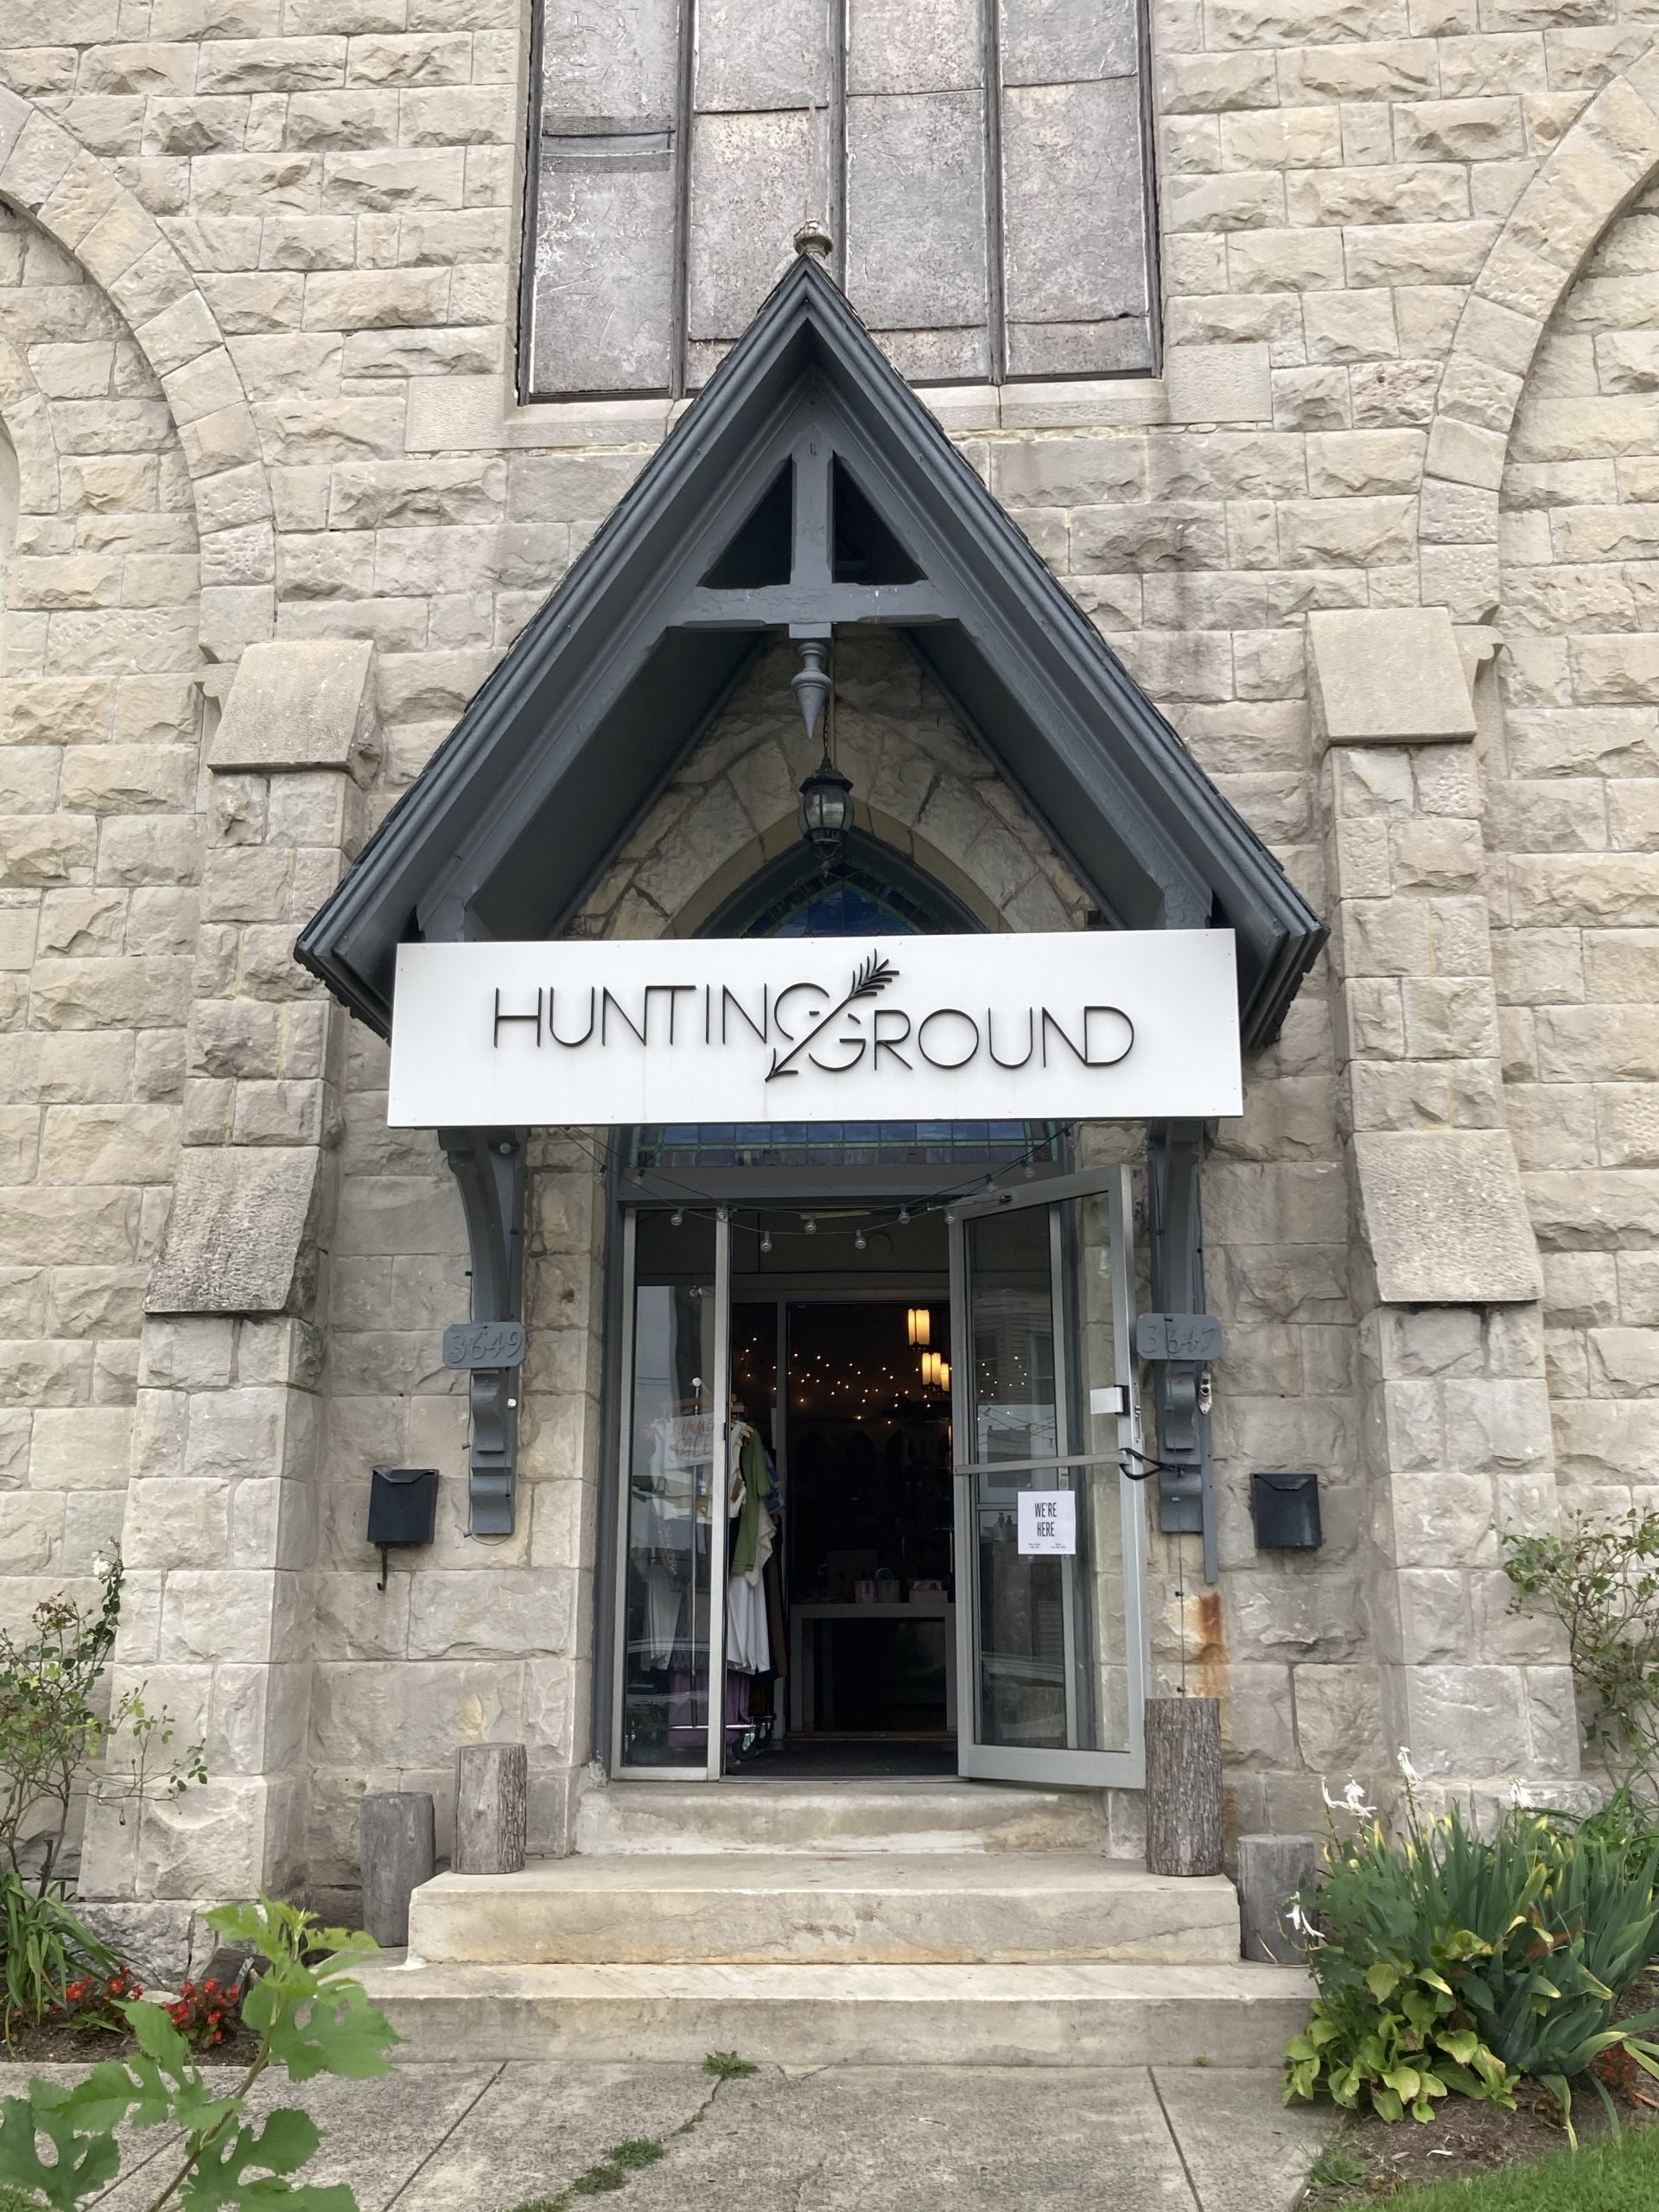 Hunting Ground entrance